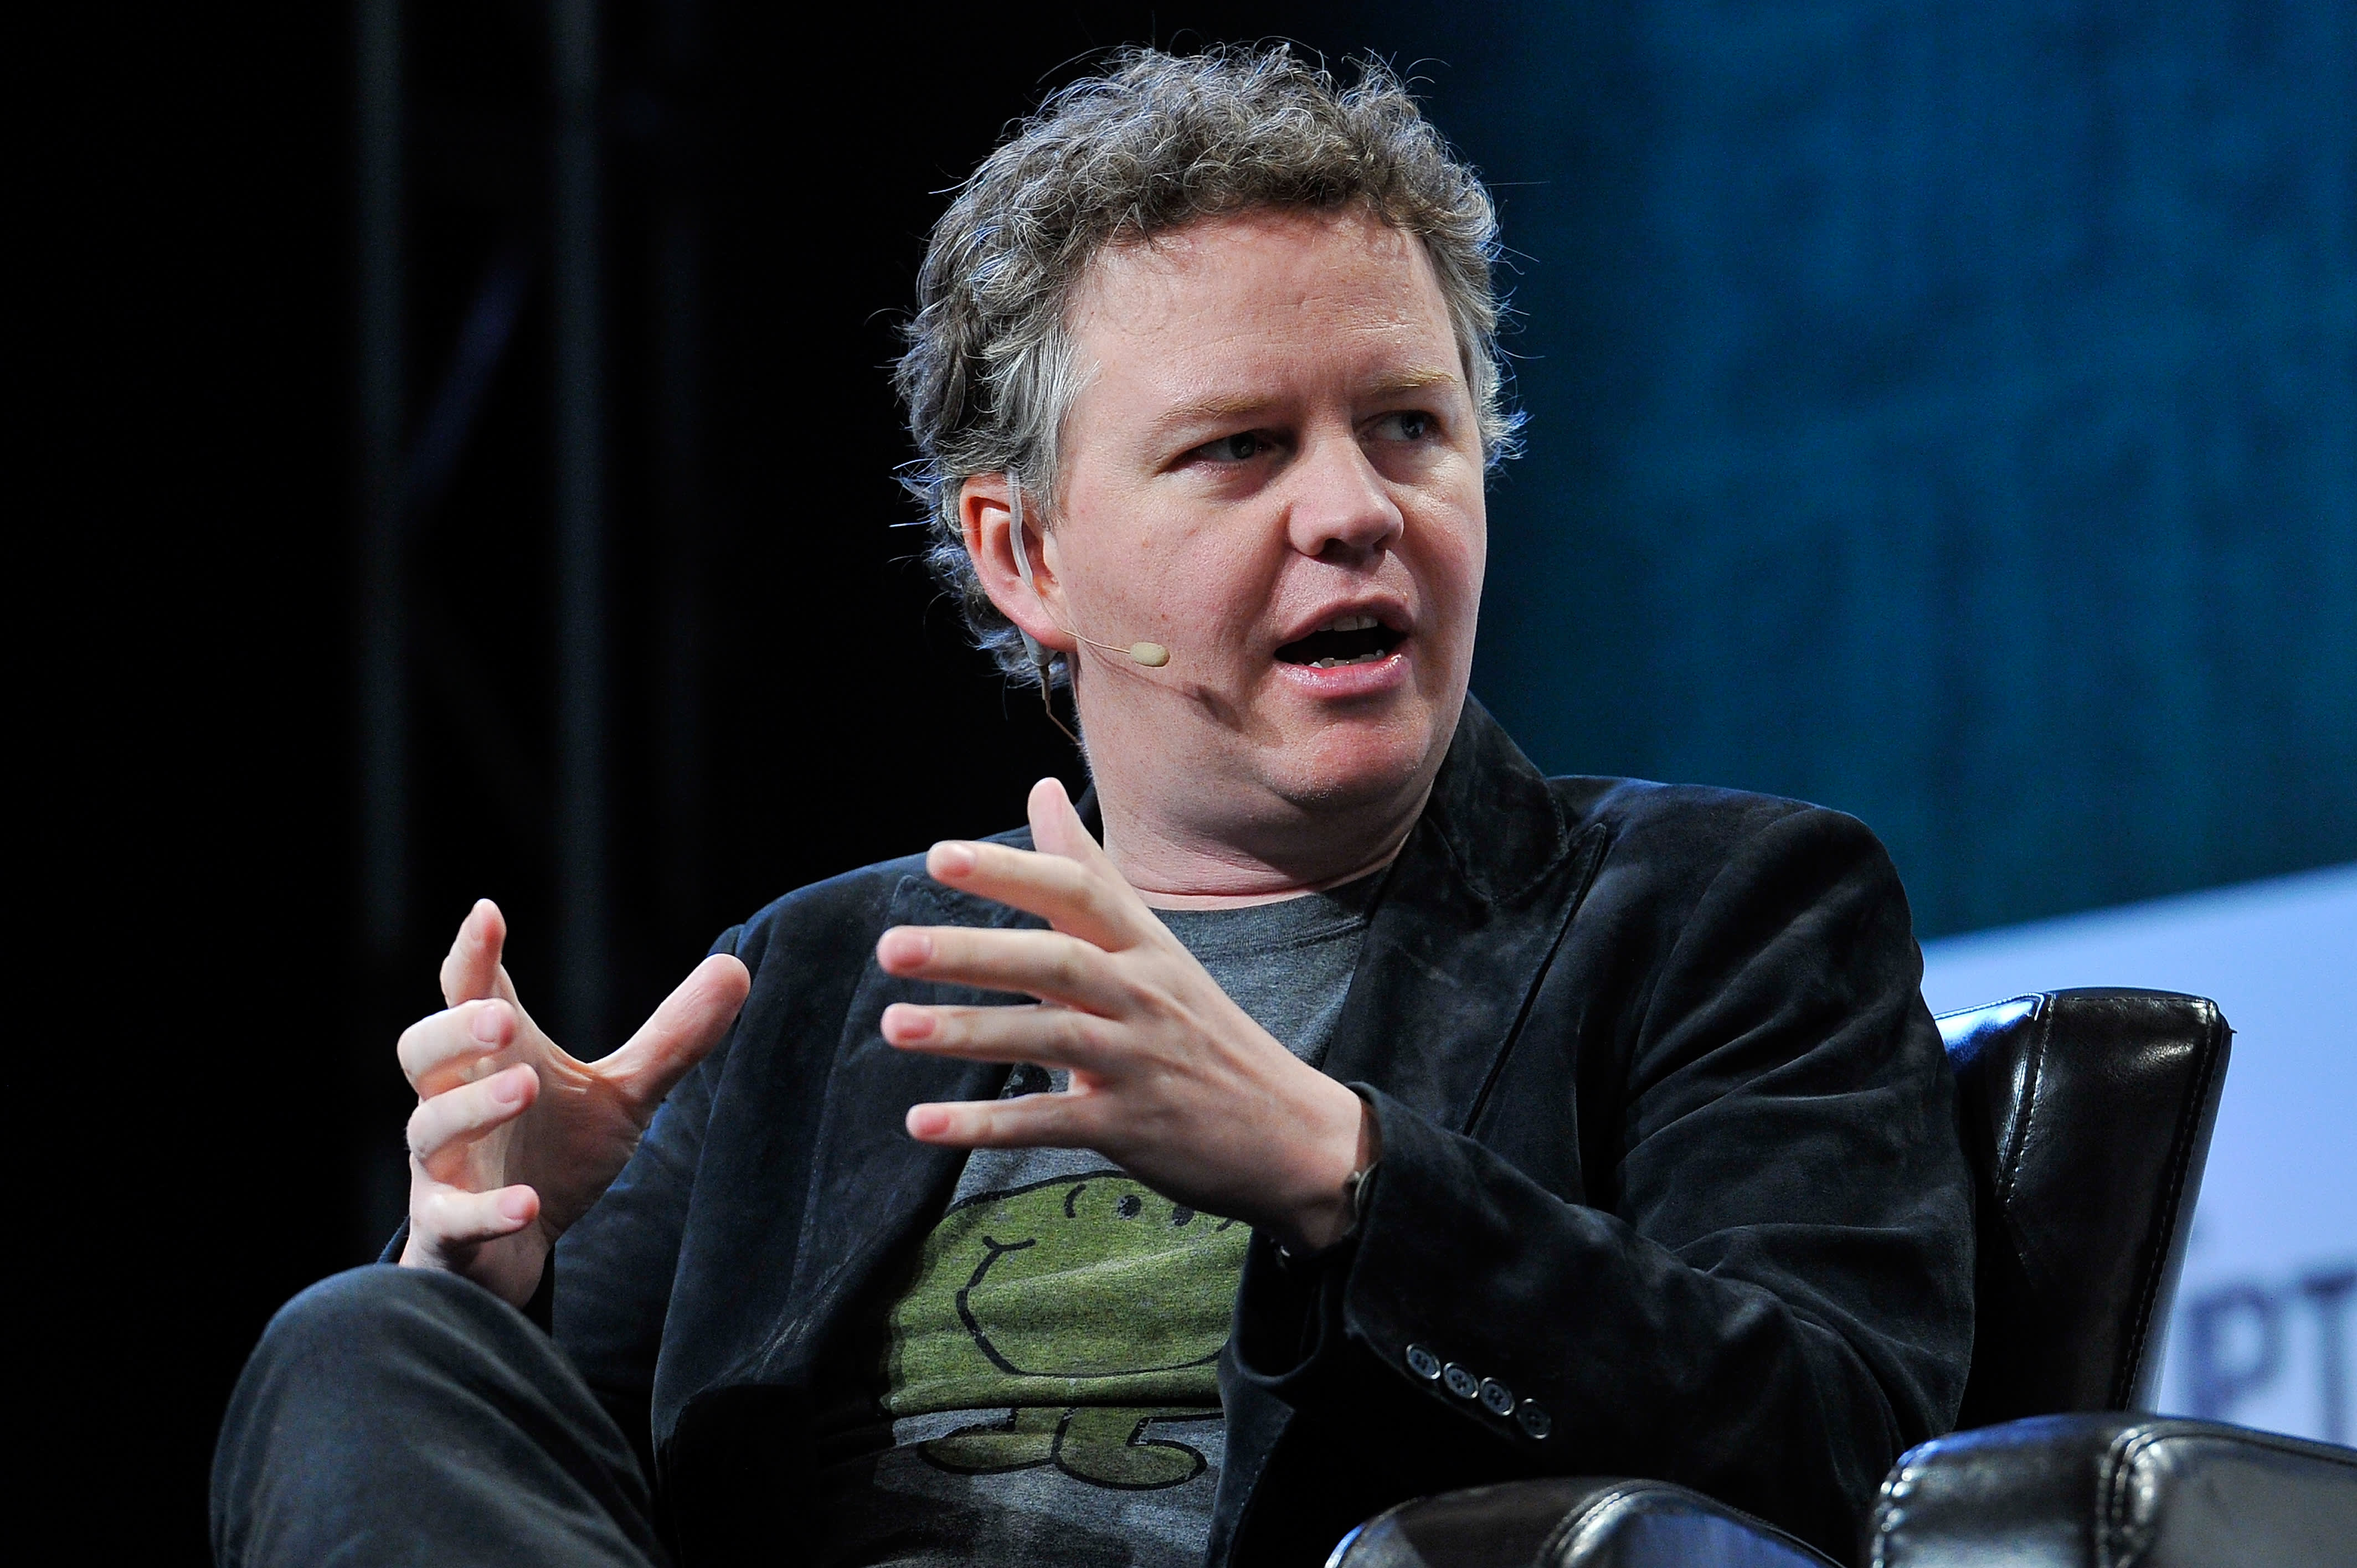 Web security company Cloudflare files to go public